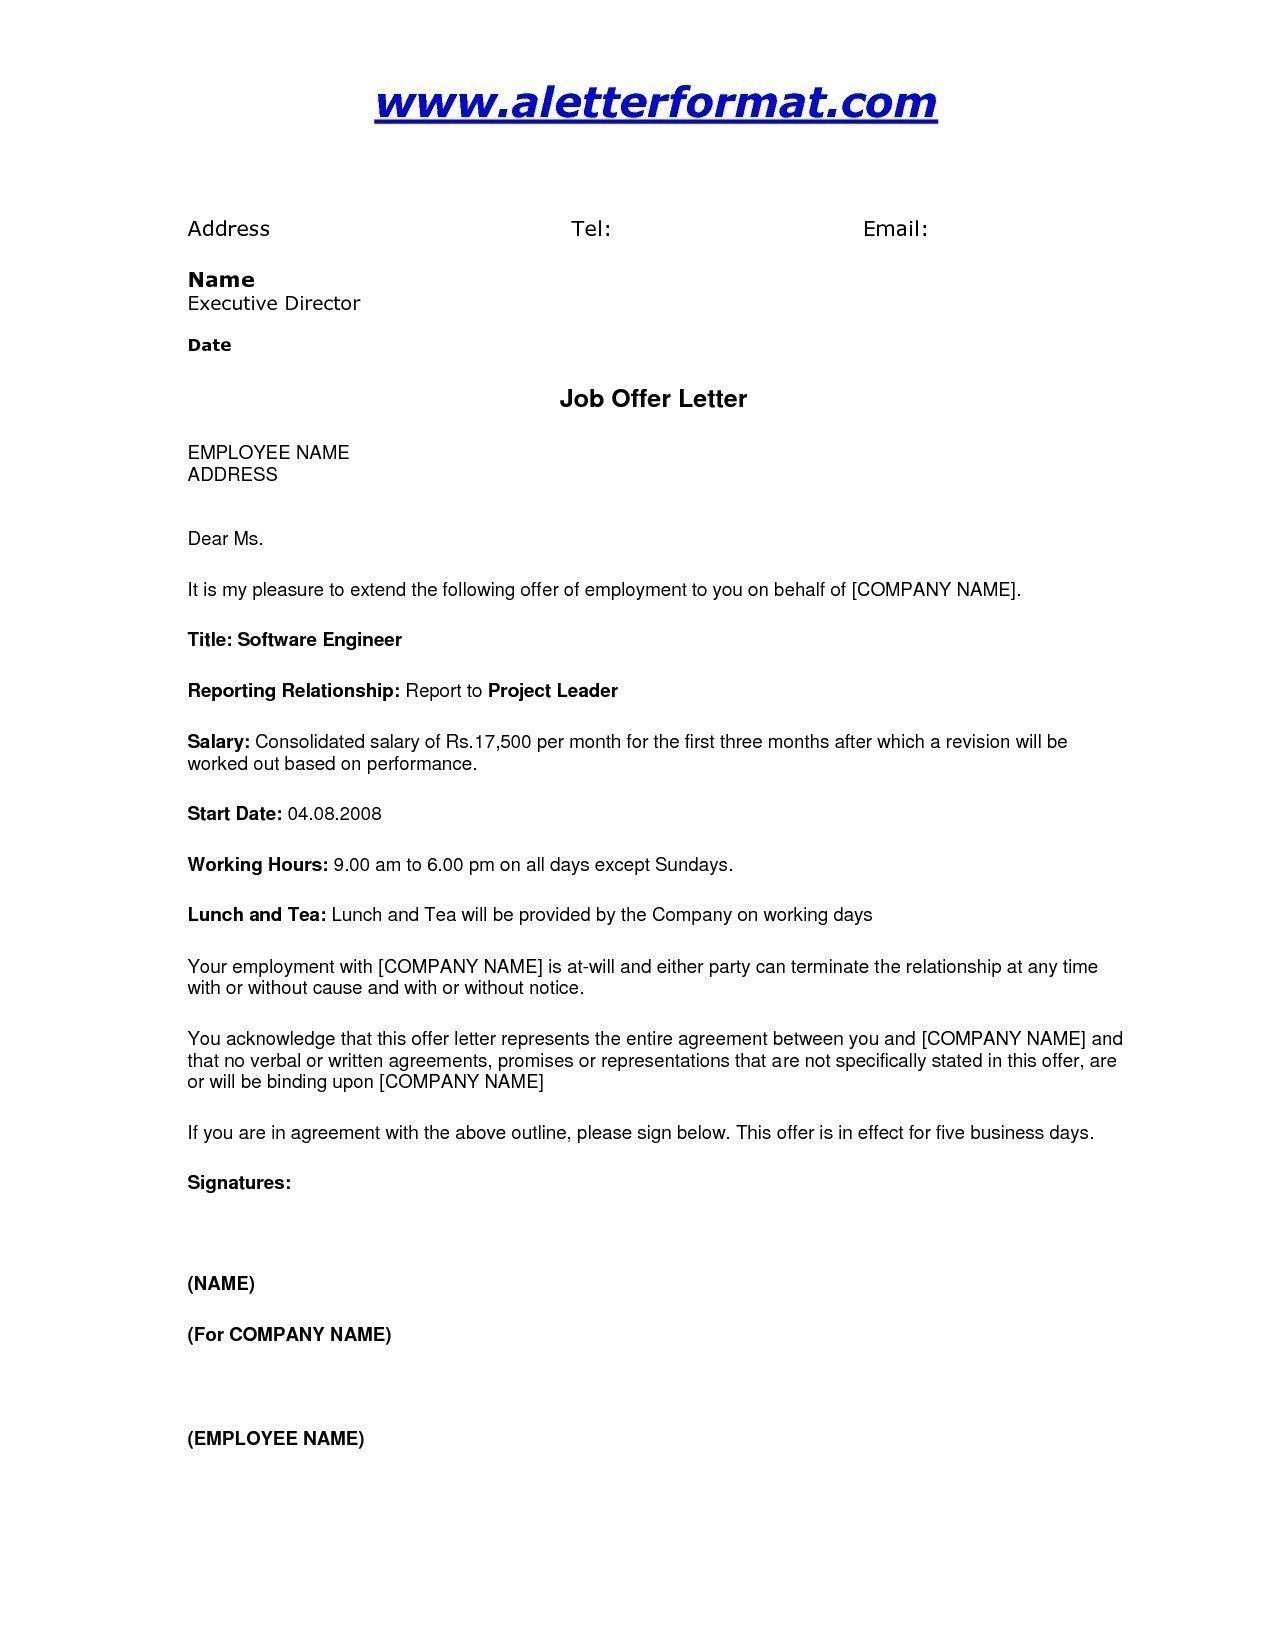 New Employee Offer Letter format Lettering, Job offer